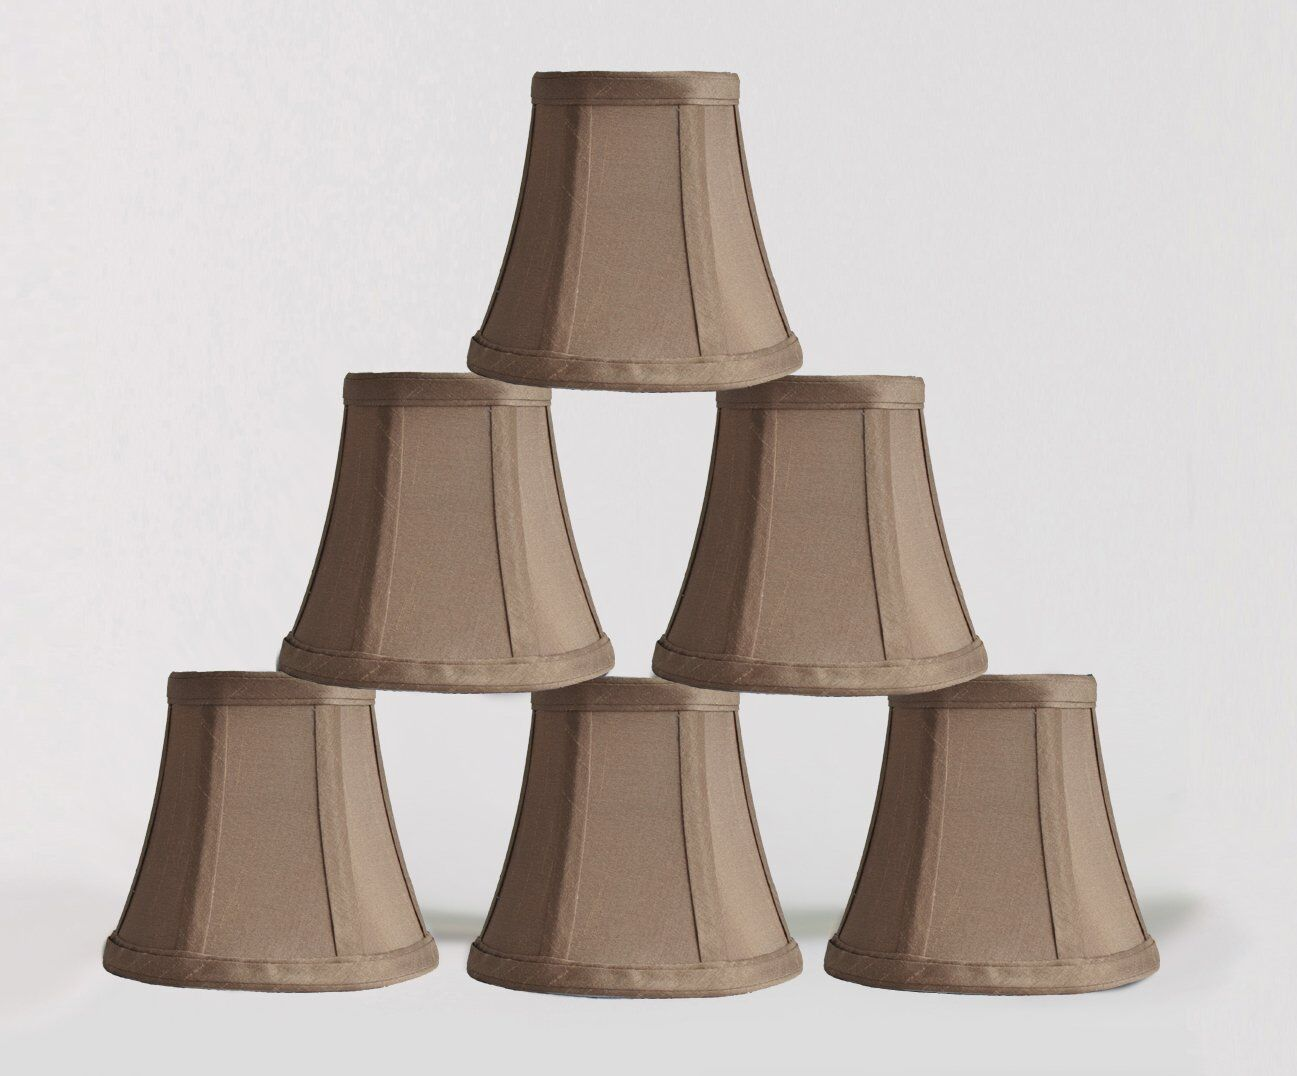 Urbanest 1100463c set of 6 chandelier mini lamp shades 5 inch bell brand new lowest price aloadofball Image collections